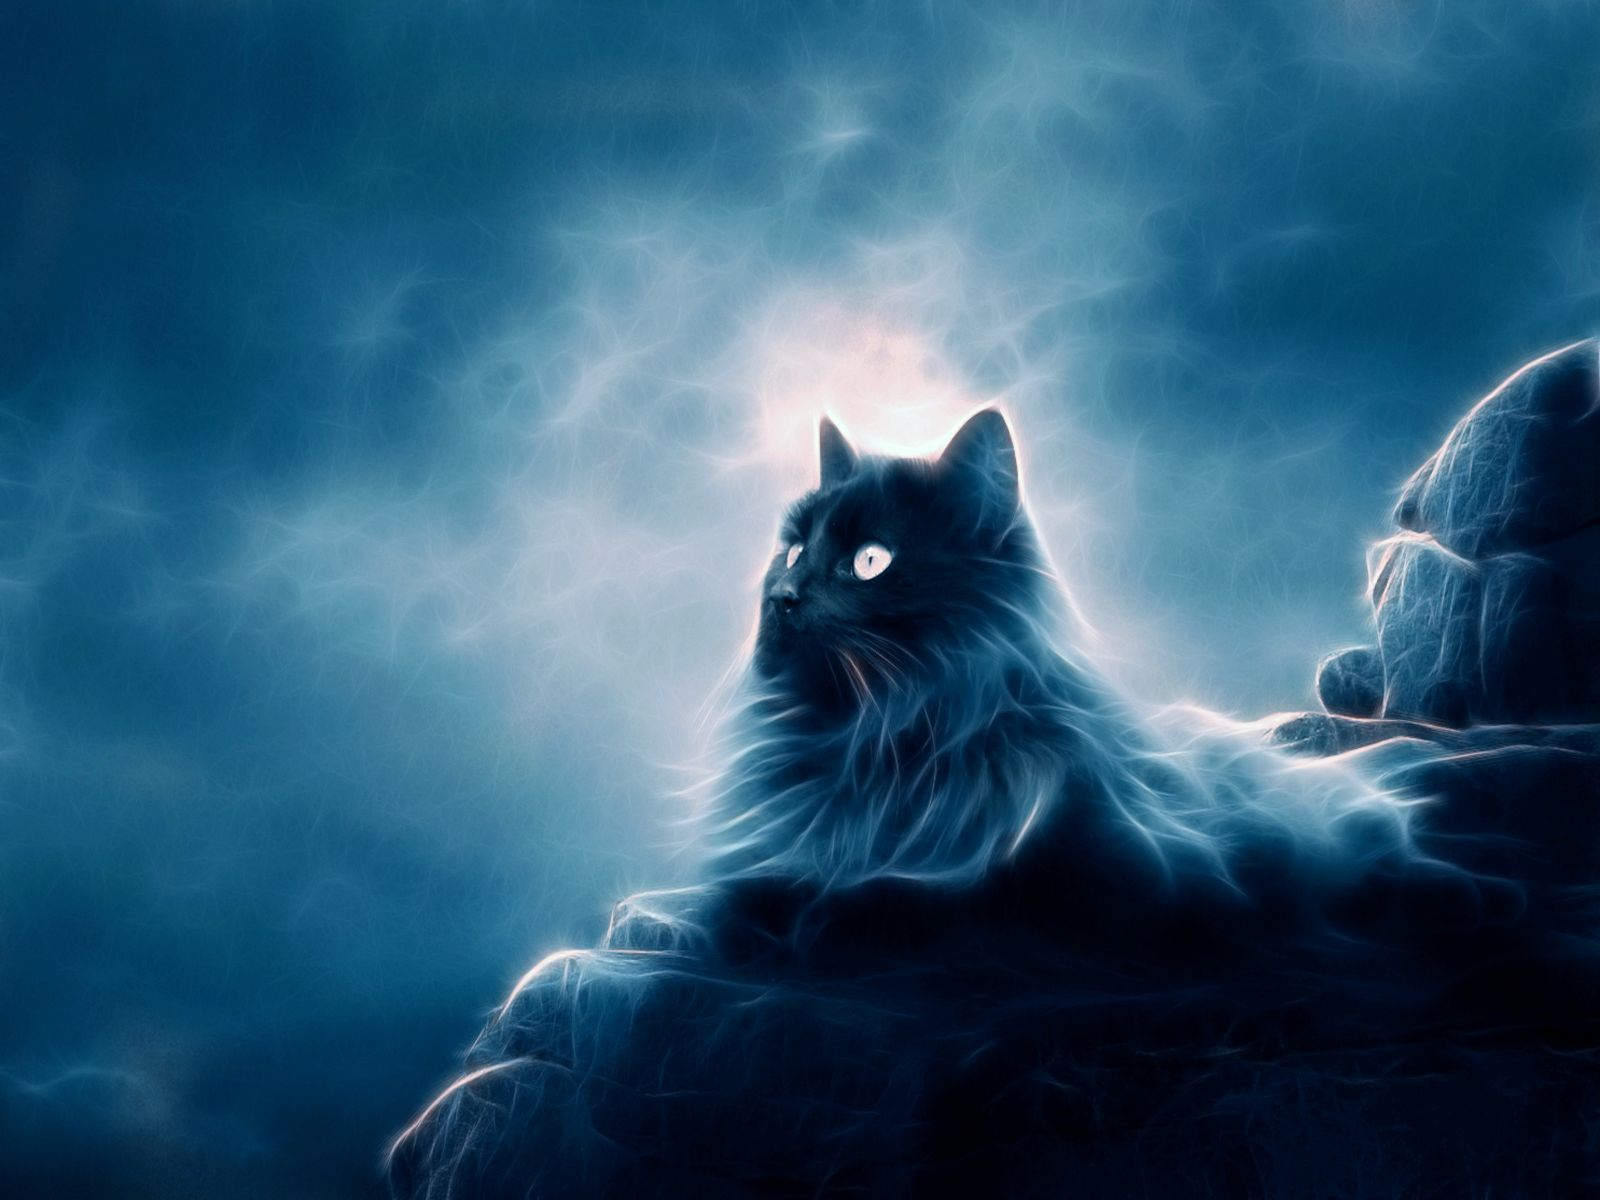 Big Cat Magic Wallpaper